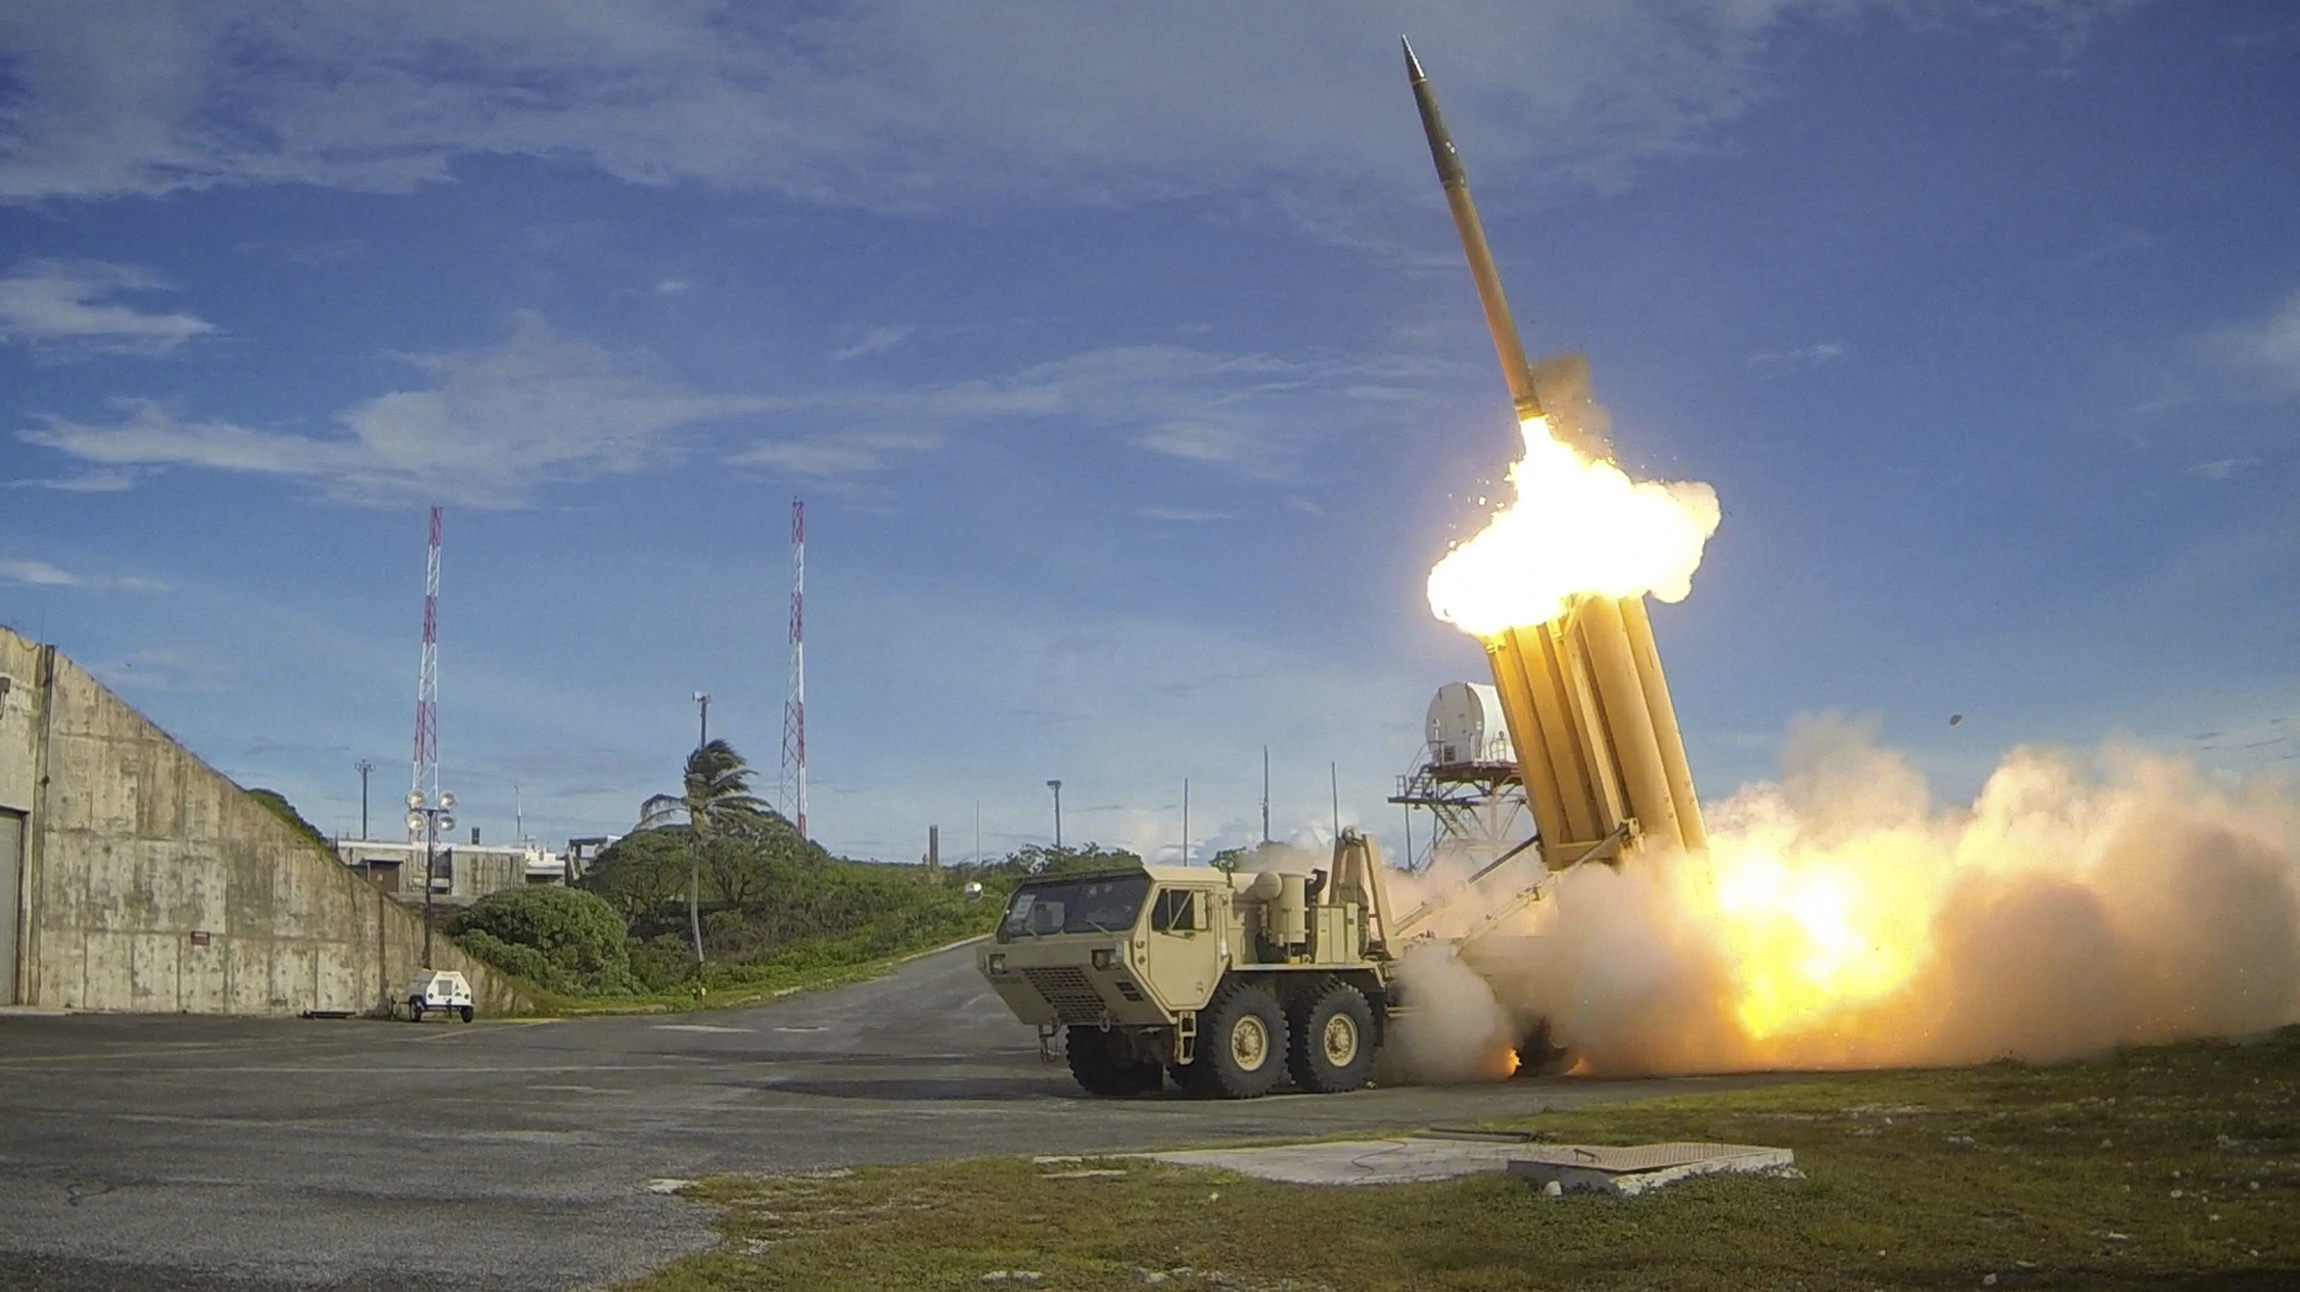 https://i2.wp.com/s1.ibtimes.com/sites/www.ibtimes.com/files/2016/03/23/thaad-missile-system.jpg